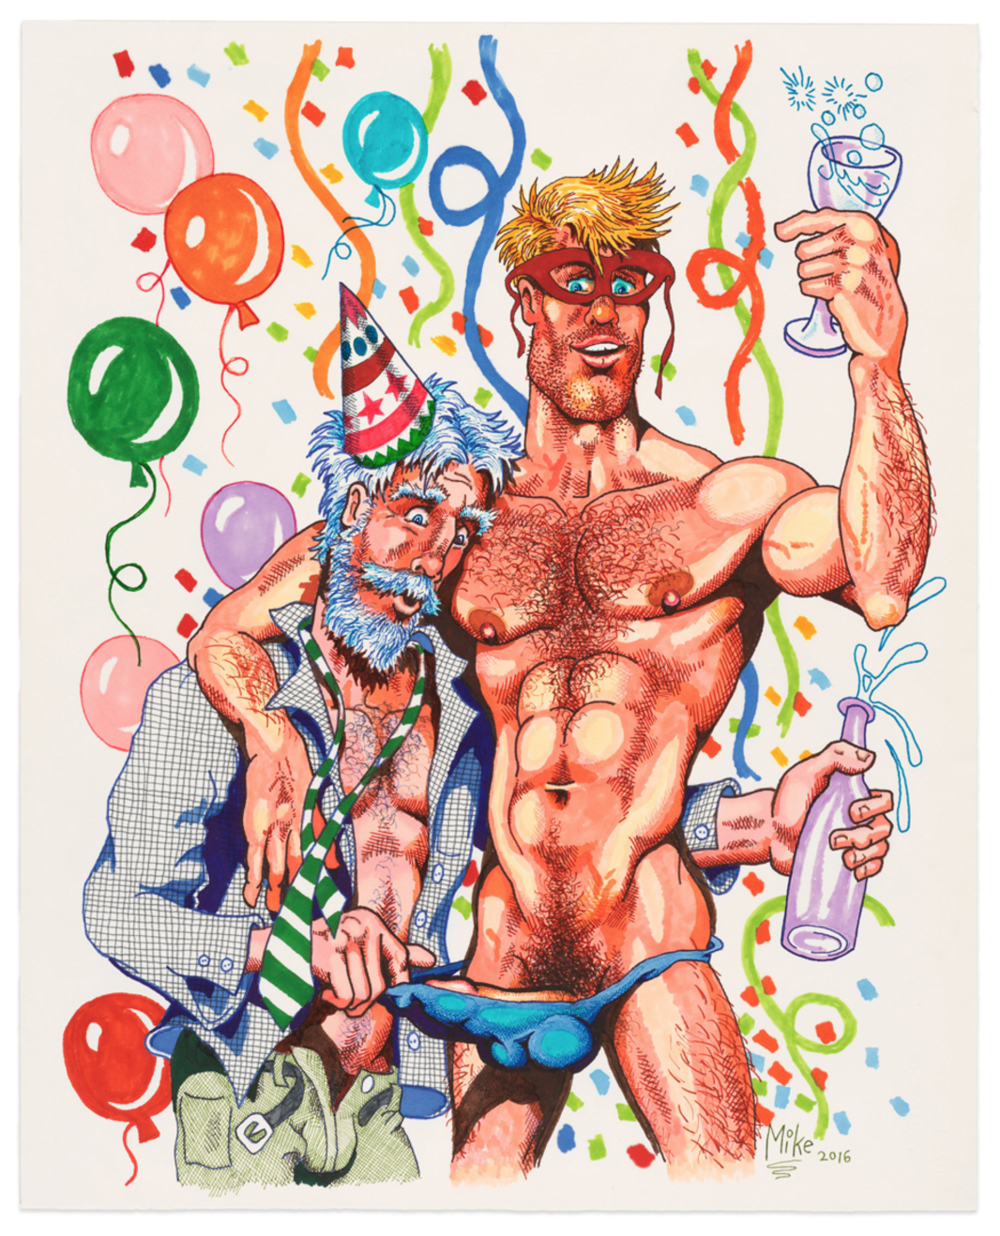 "Mike Kuchar,  Party Time , 2016-2017, Felt tip pen and ink on paper, 26.5"" x 21.5"" (67.3 x 54.6 cm); Courtesy Anton Kern Gallery."